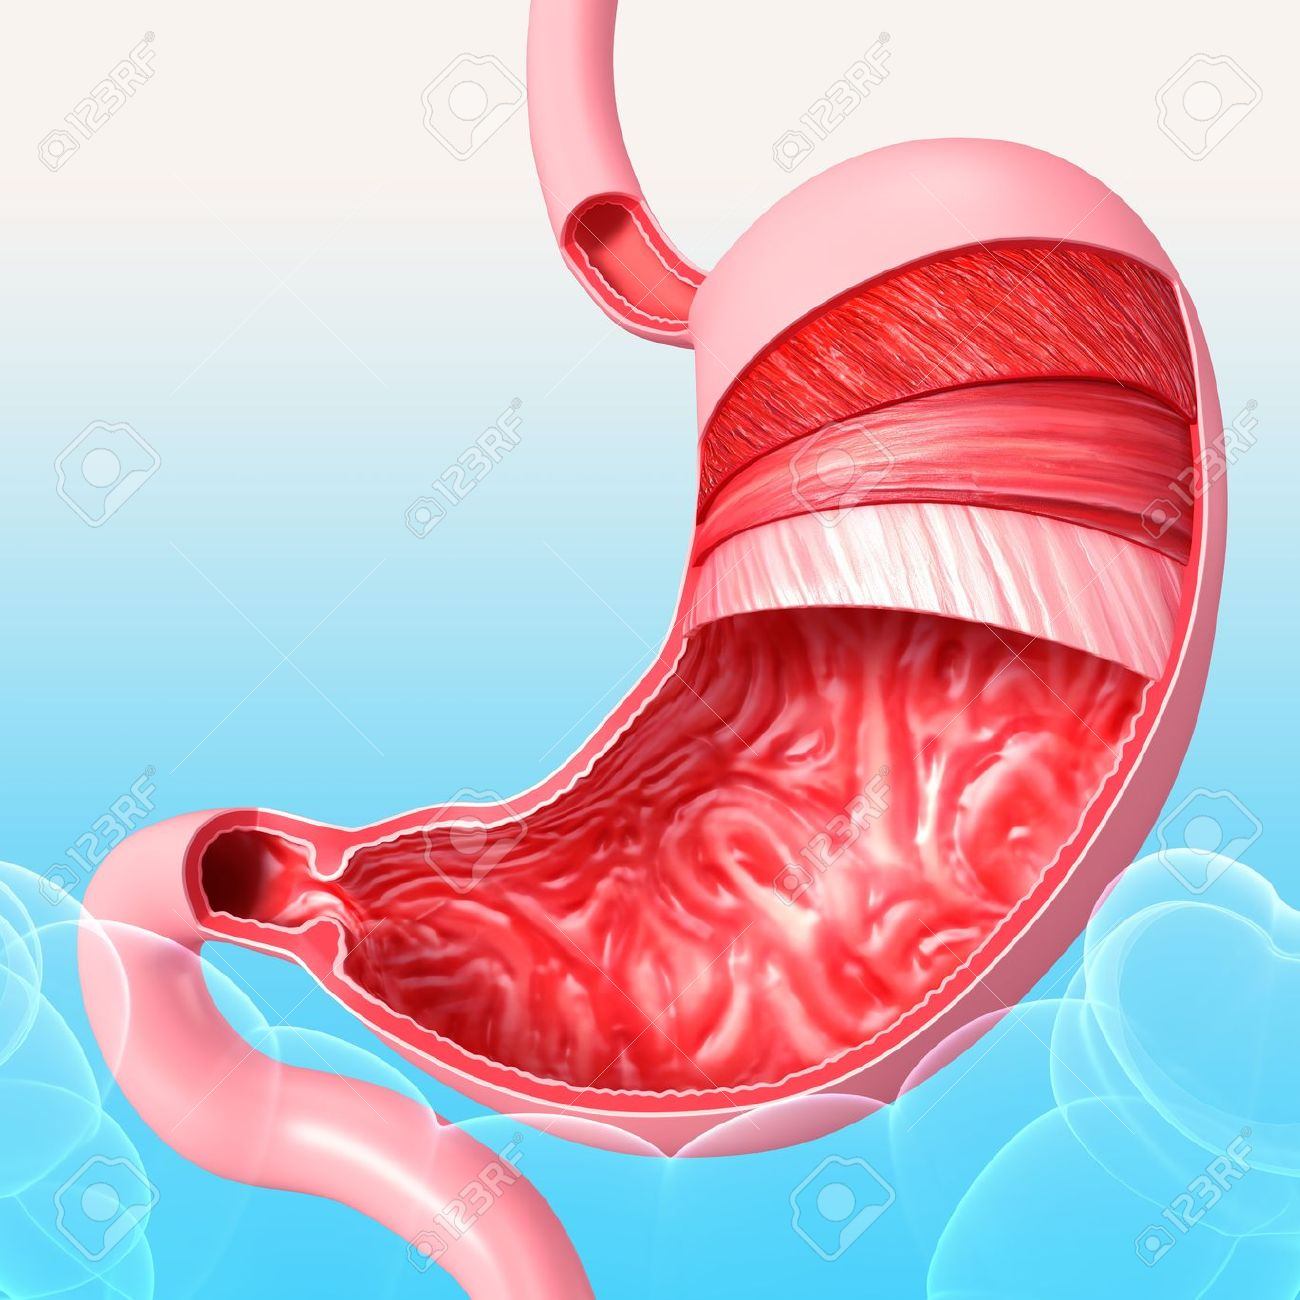 Anatomy Of Human Stomach In Blue Background Stock Photo Picture And